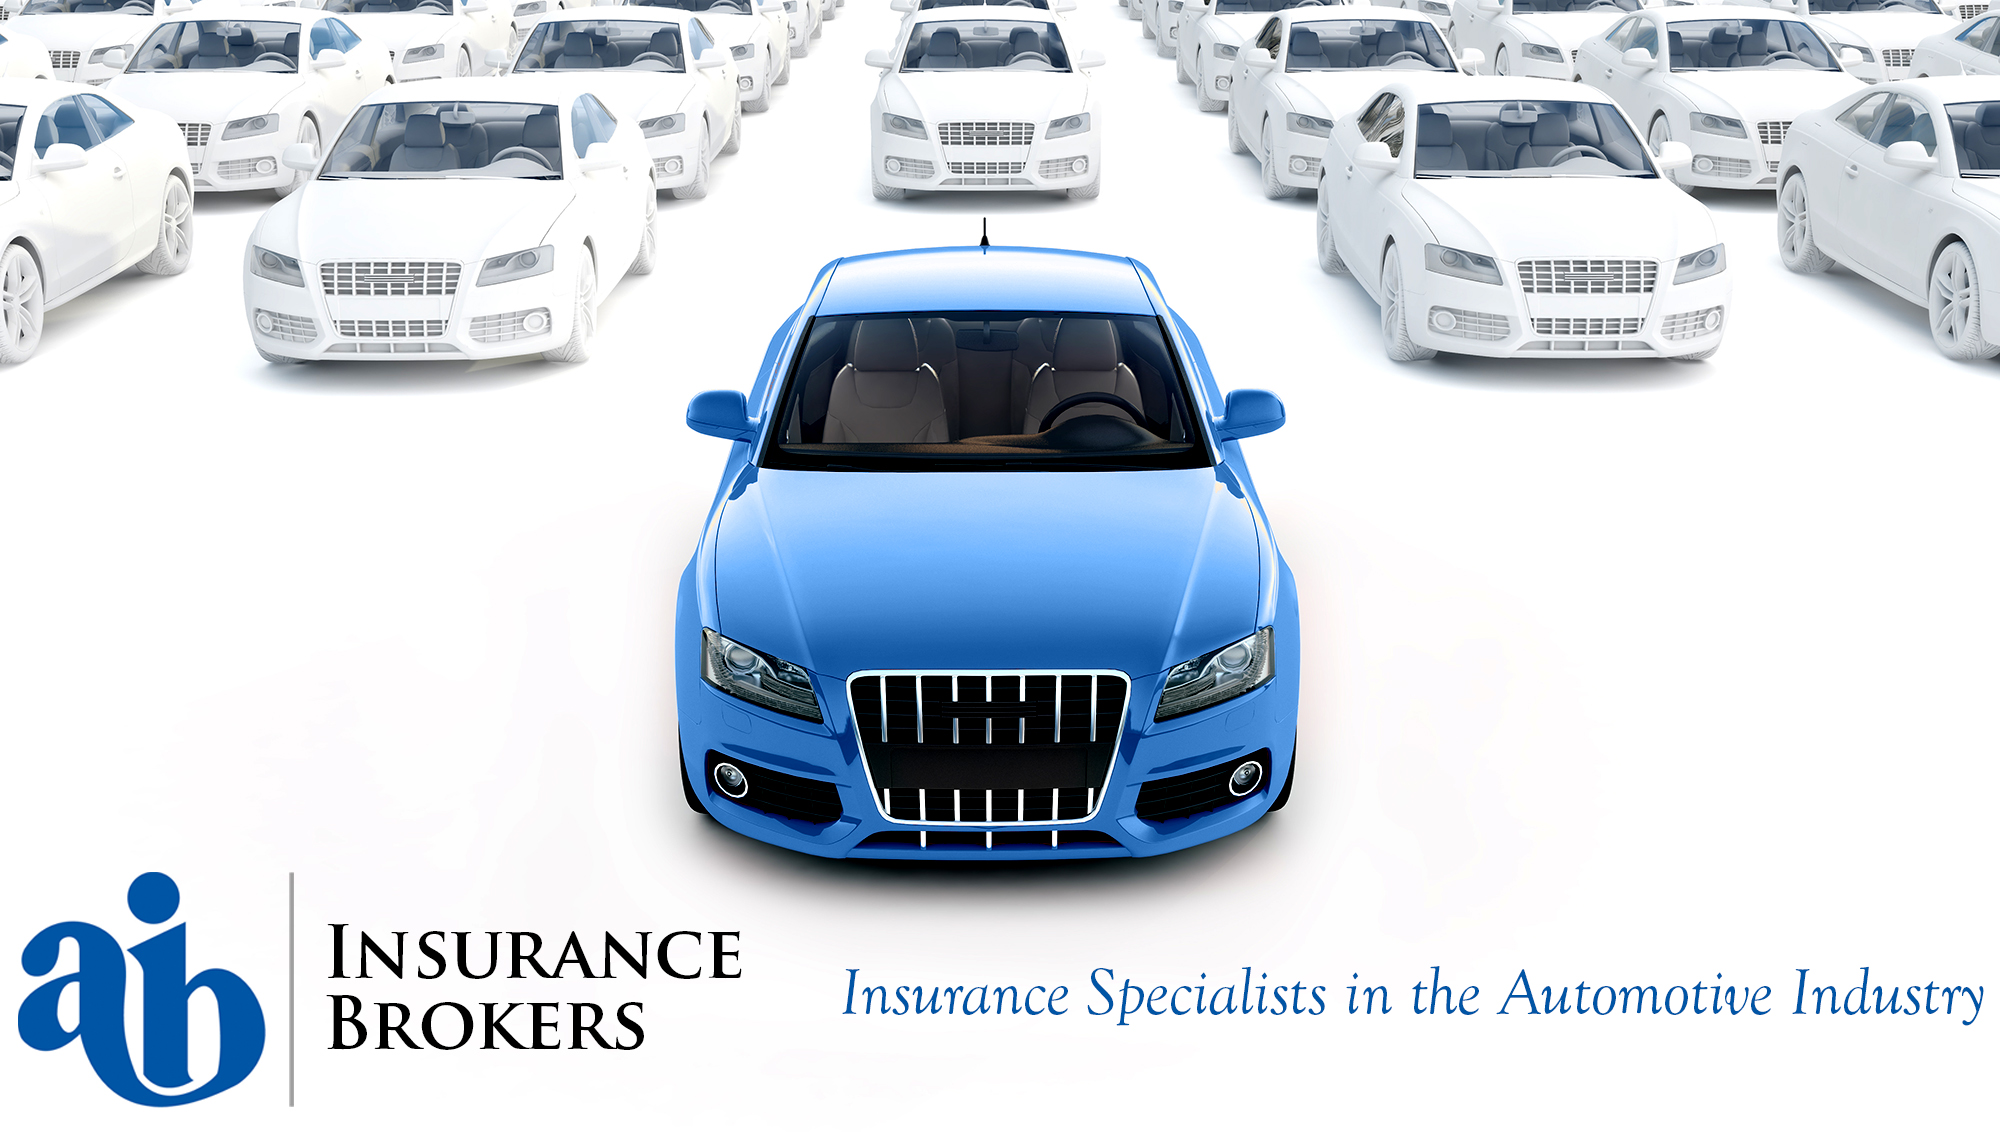 AIB Insurance Brokers - Insurance Specialists in the Automotive Industry